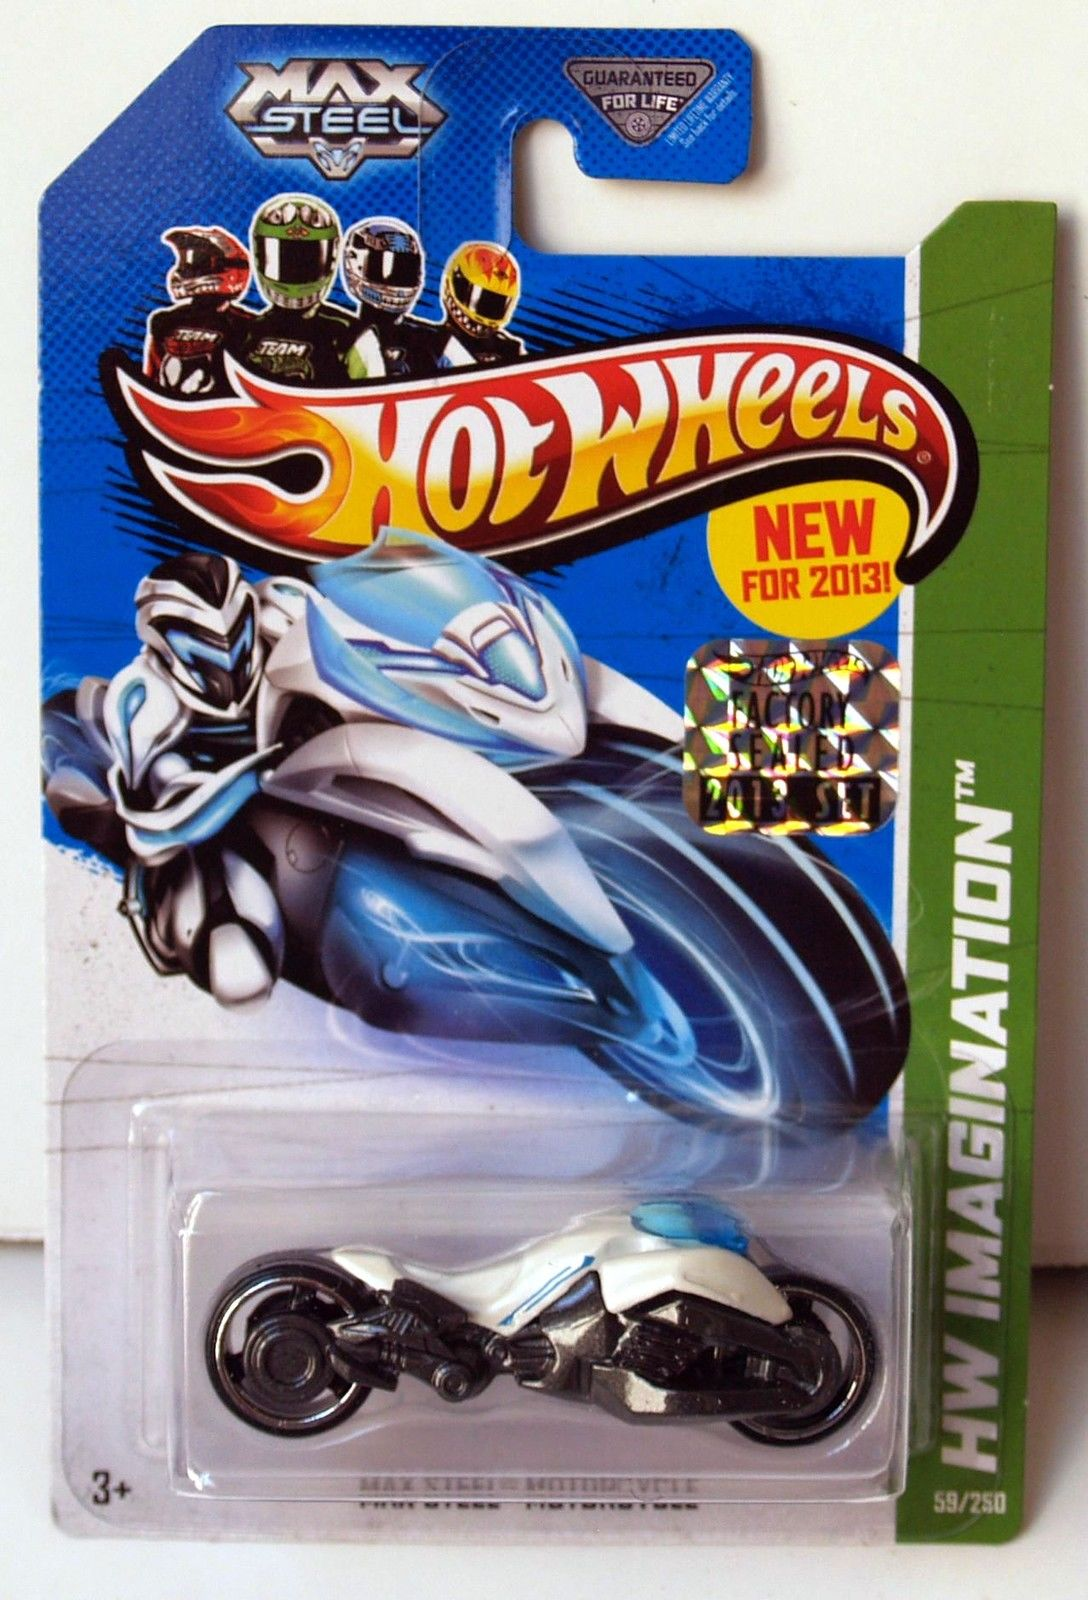 HOT WHEELS 2013 HW IMAGINATION FUTURE FLEET MAX STEEL MOTORCYCLE FACTORY SEALED